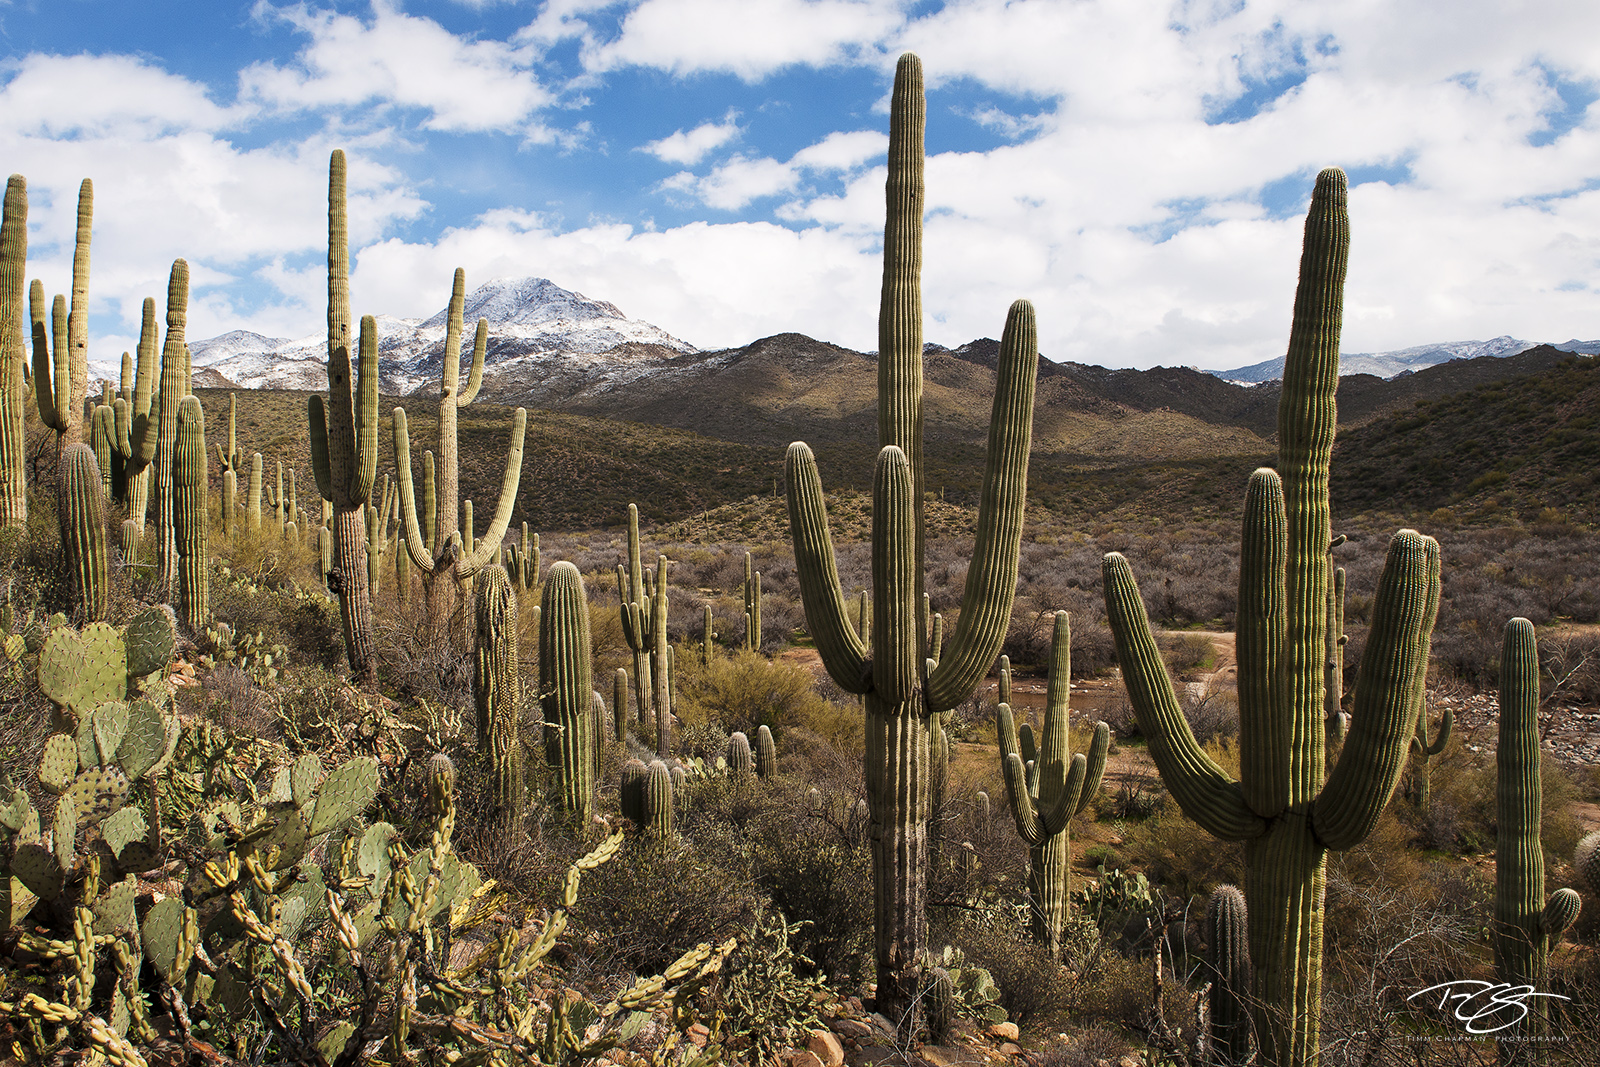 A stand of saguaros congregate on the hillside in the 4 peaks wilderness of central Arizon